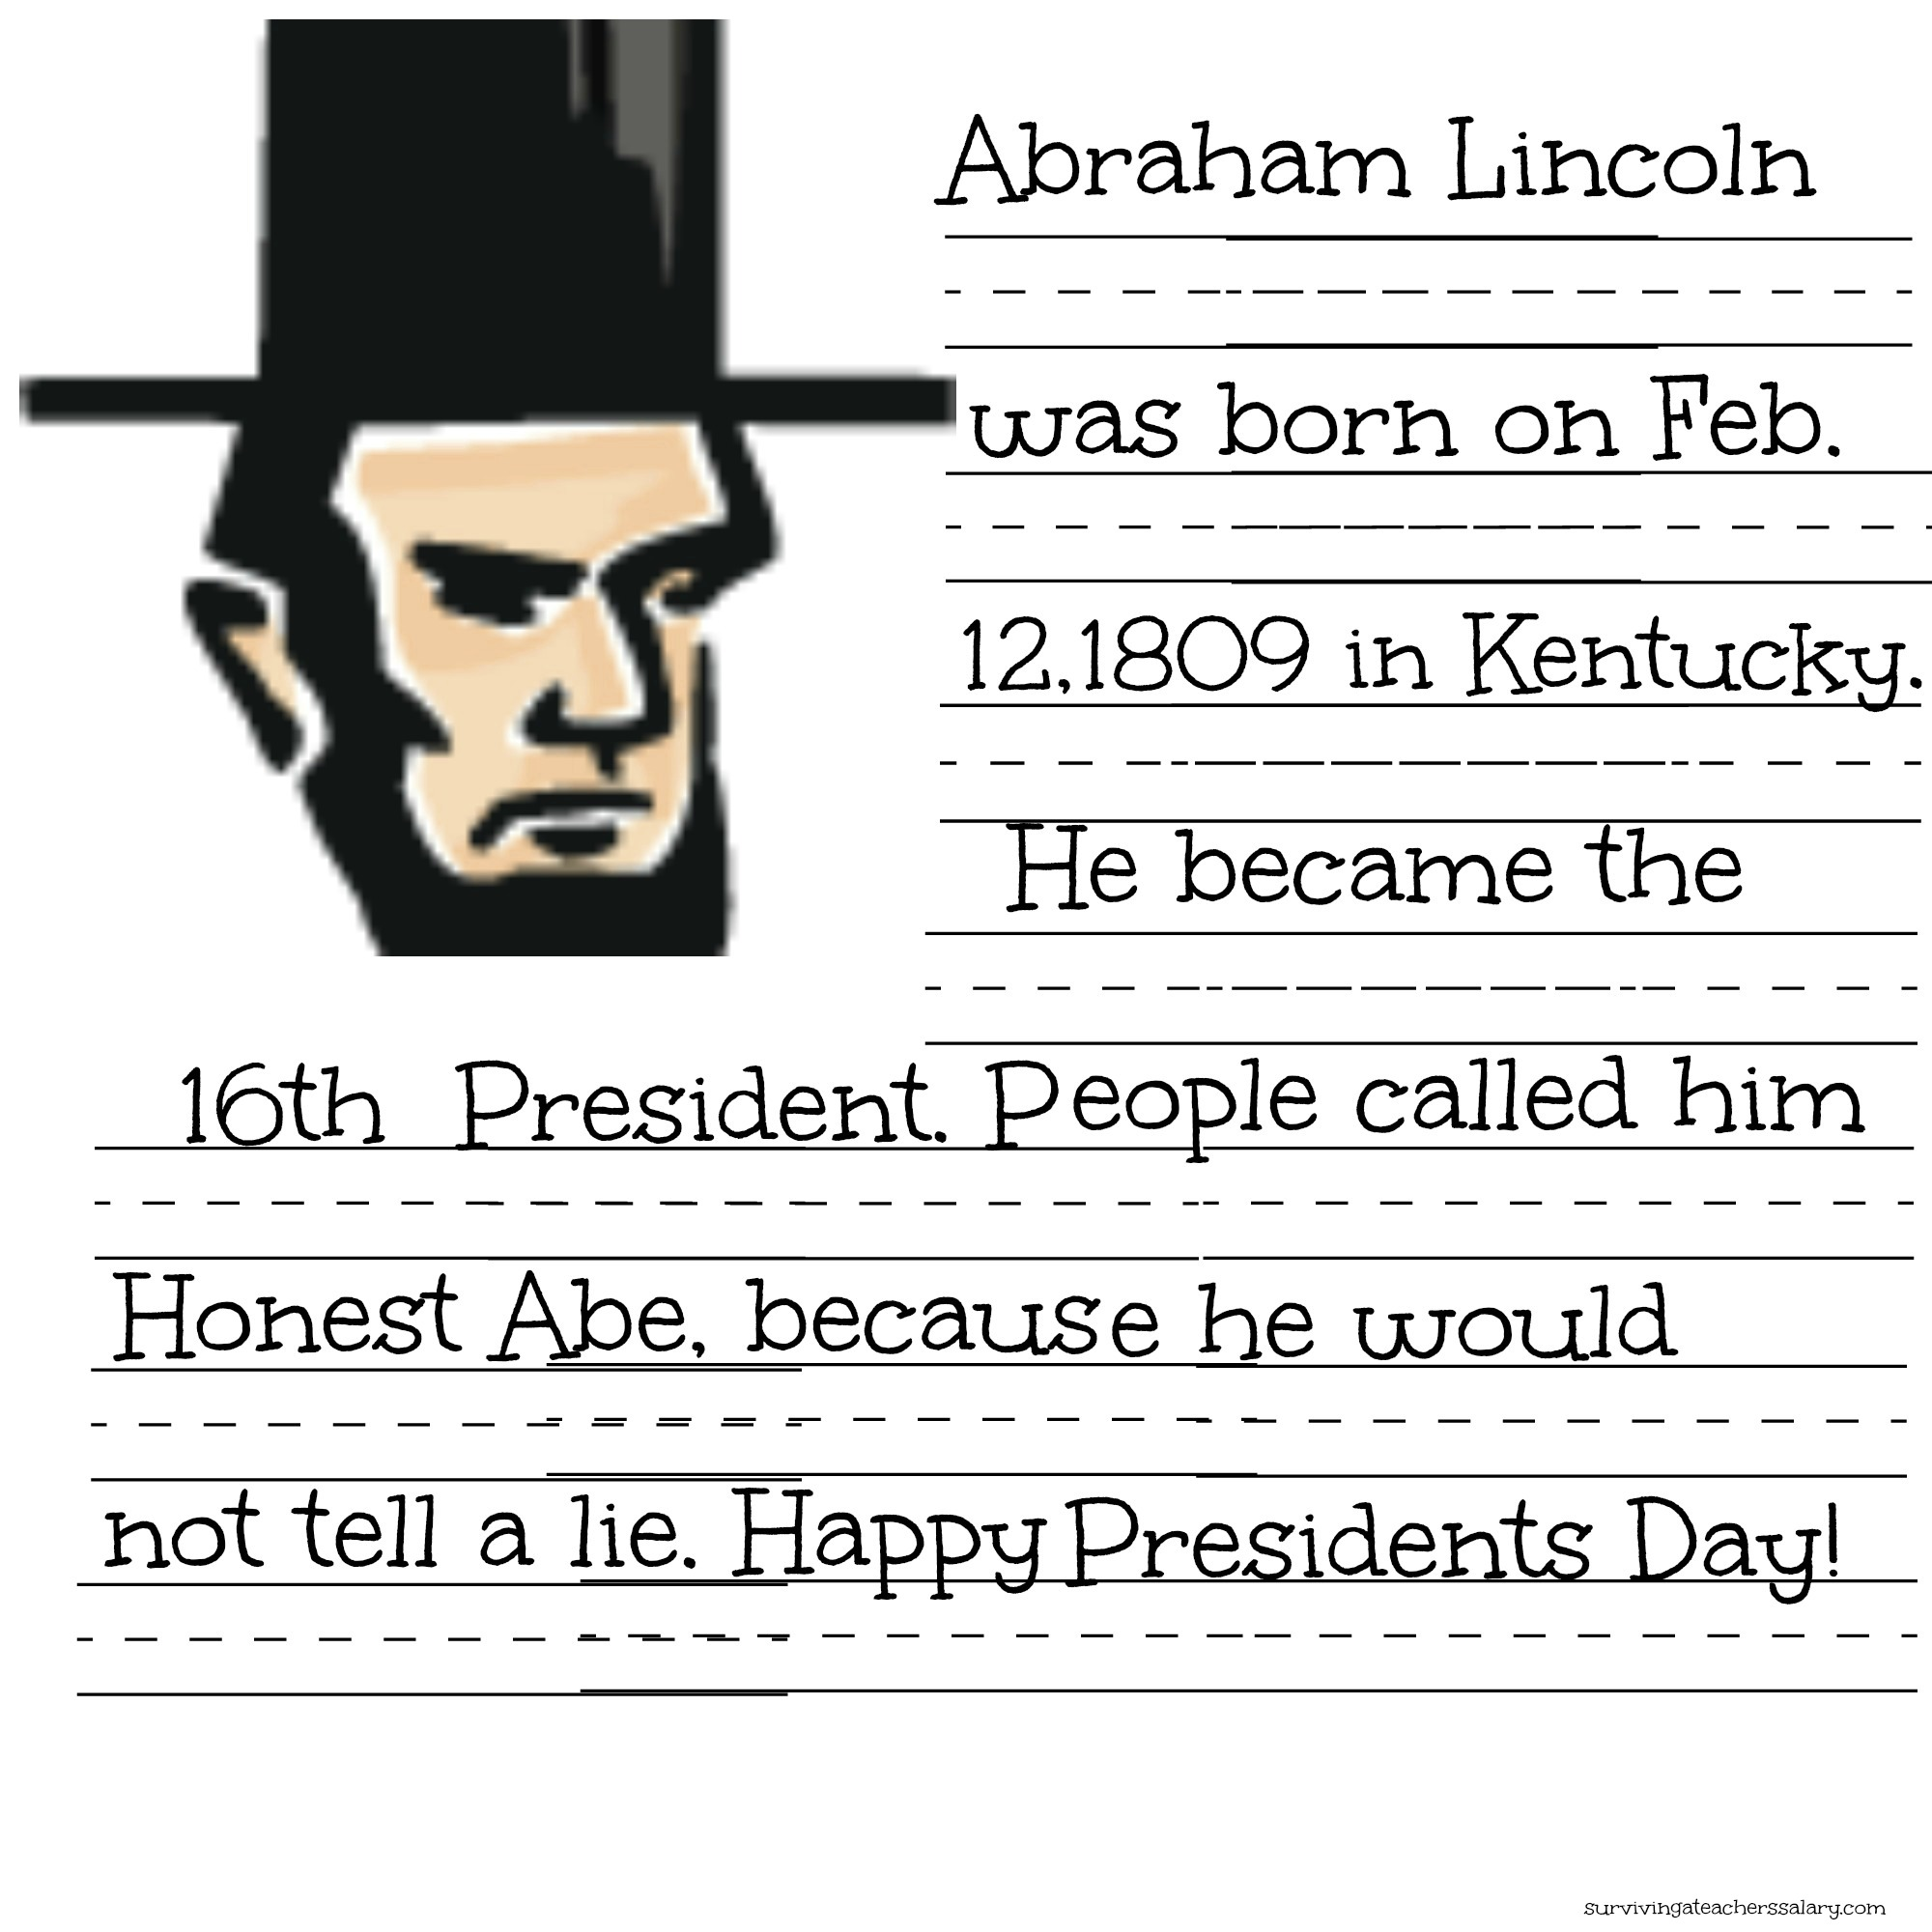 photo about Printable Pictures of Abraham Lincoln known as Abraham lincoln clipart printable, Abraham lincoln printable